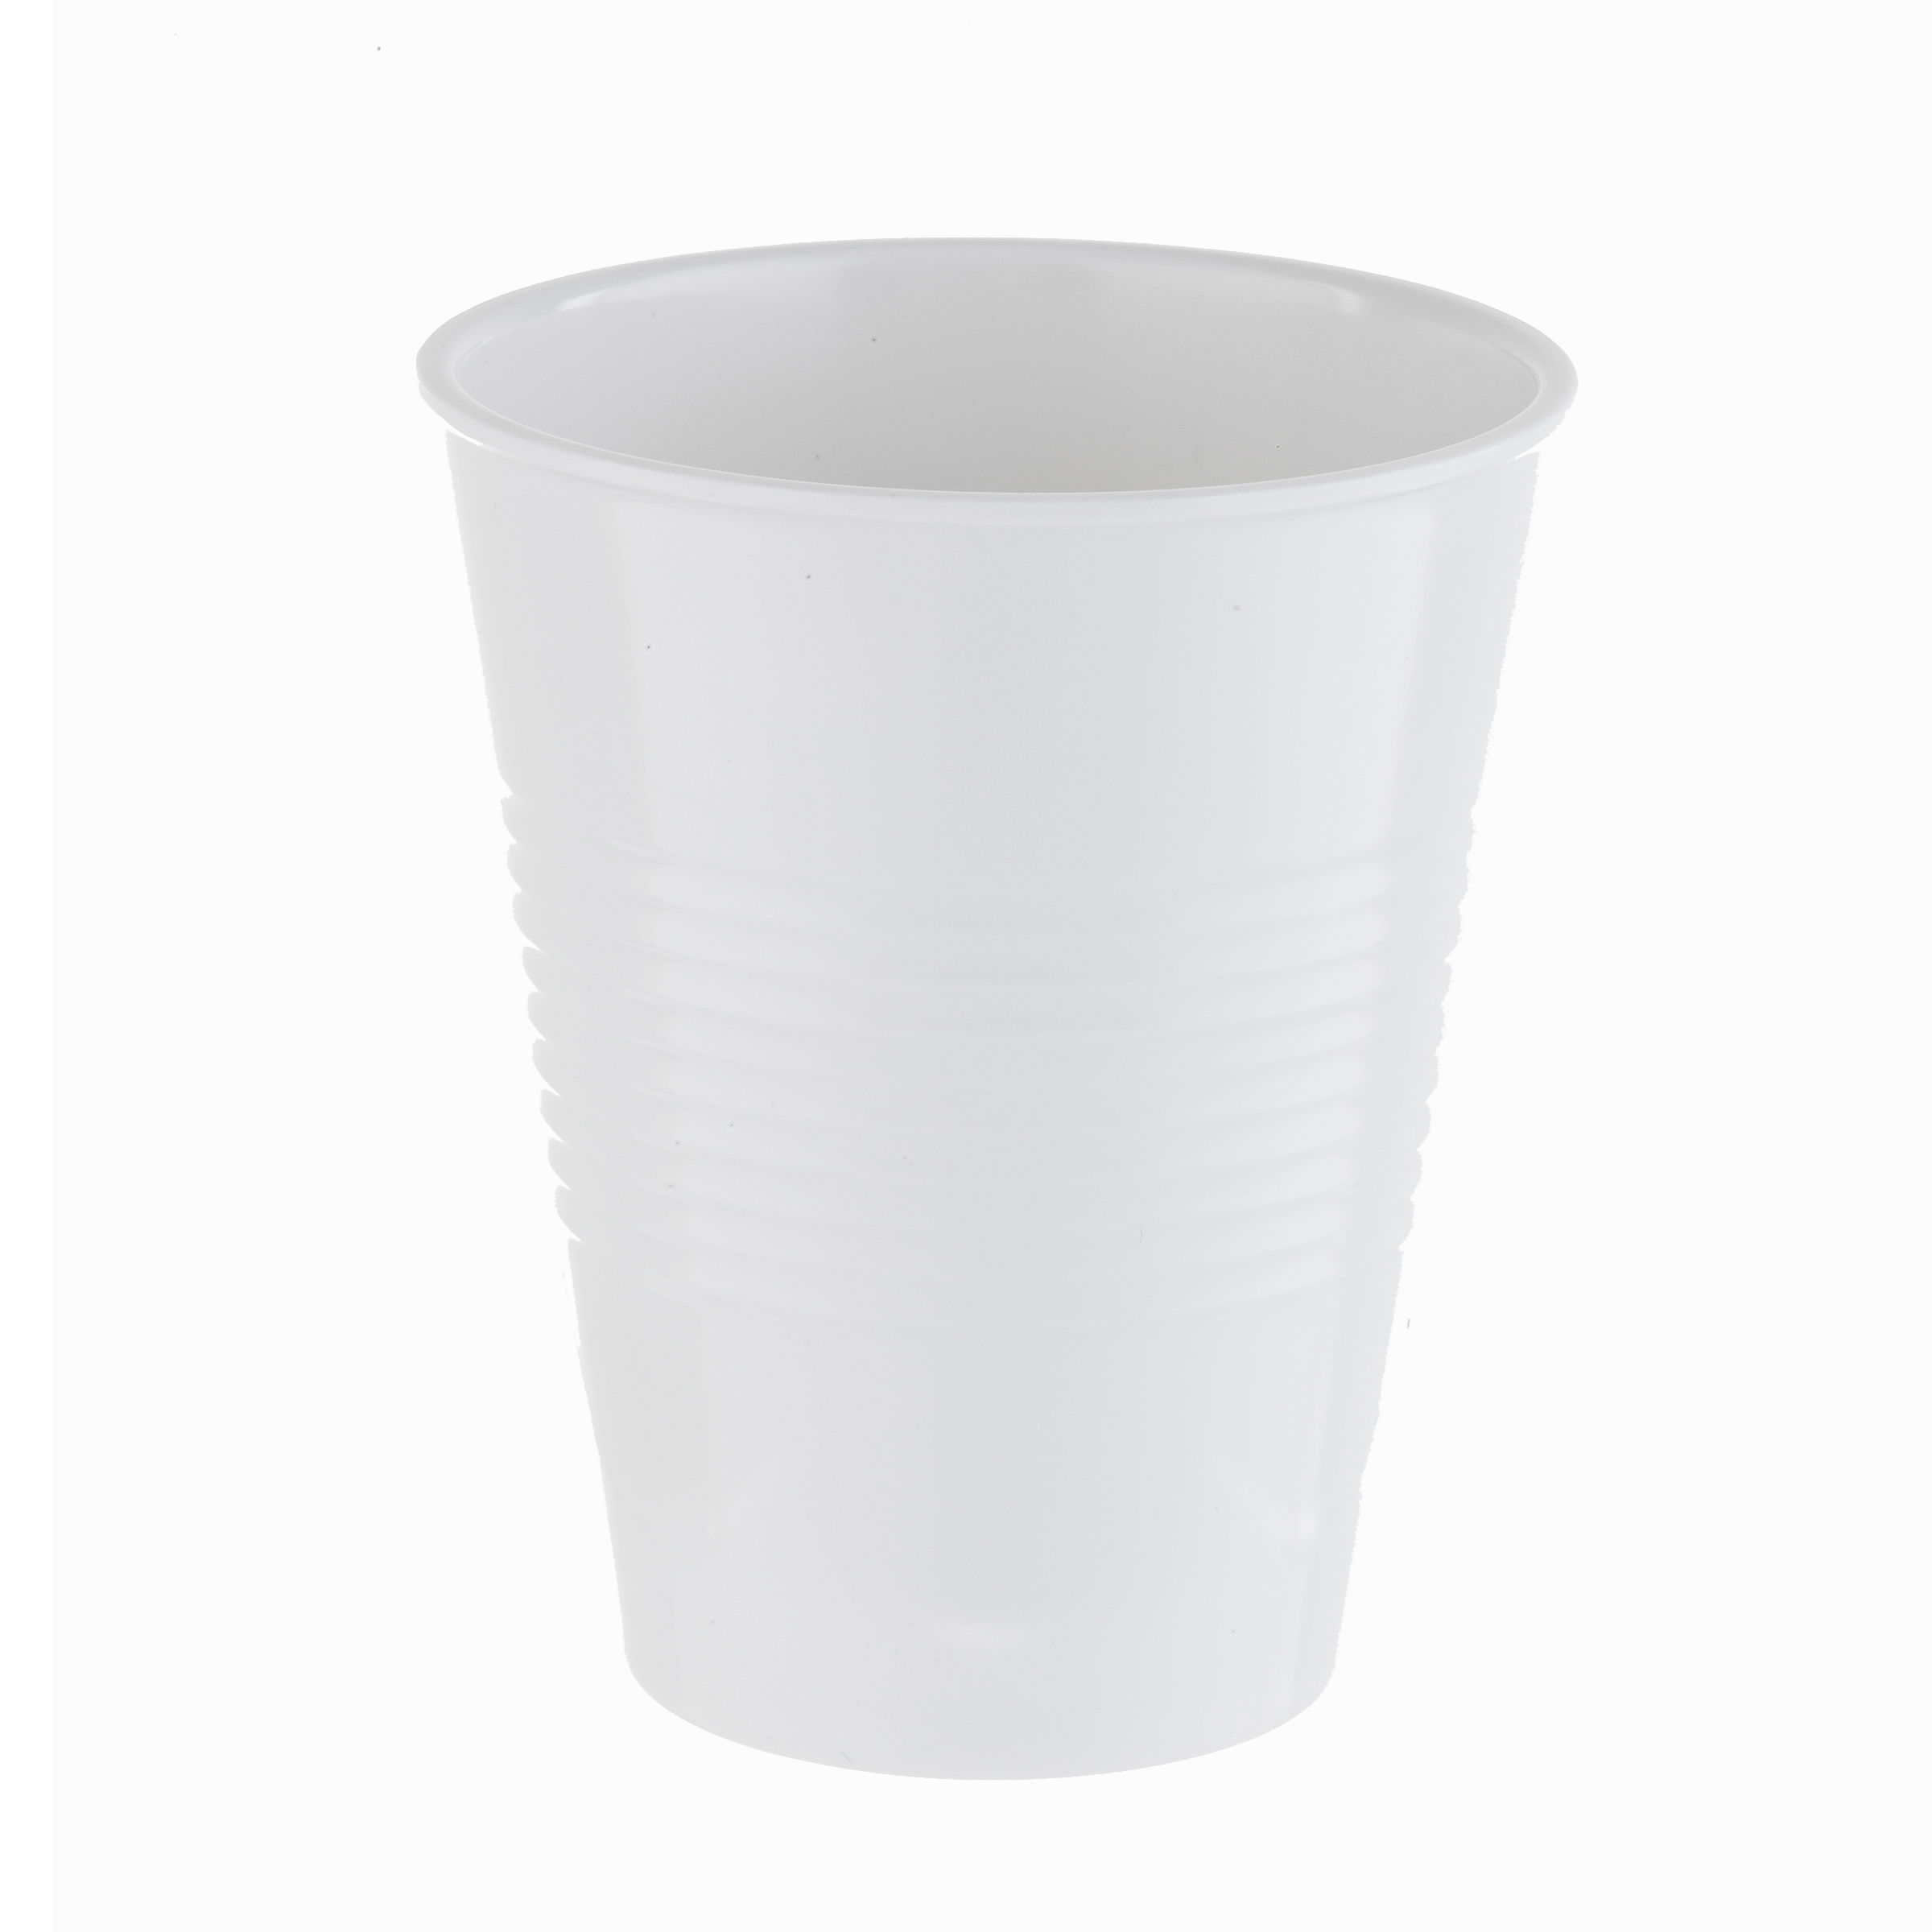 TableCraft Products 123465 tumbler, plastic